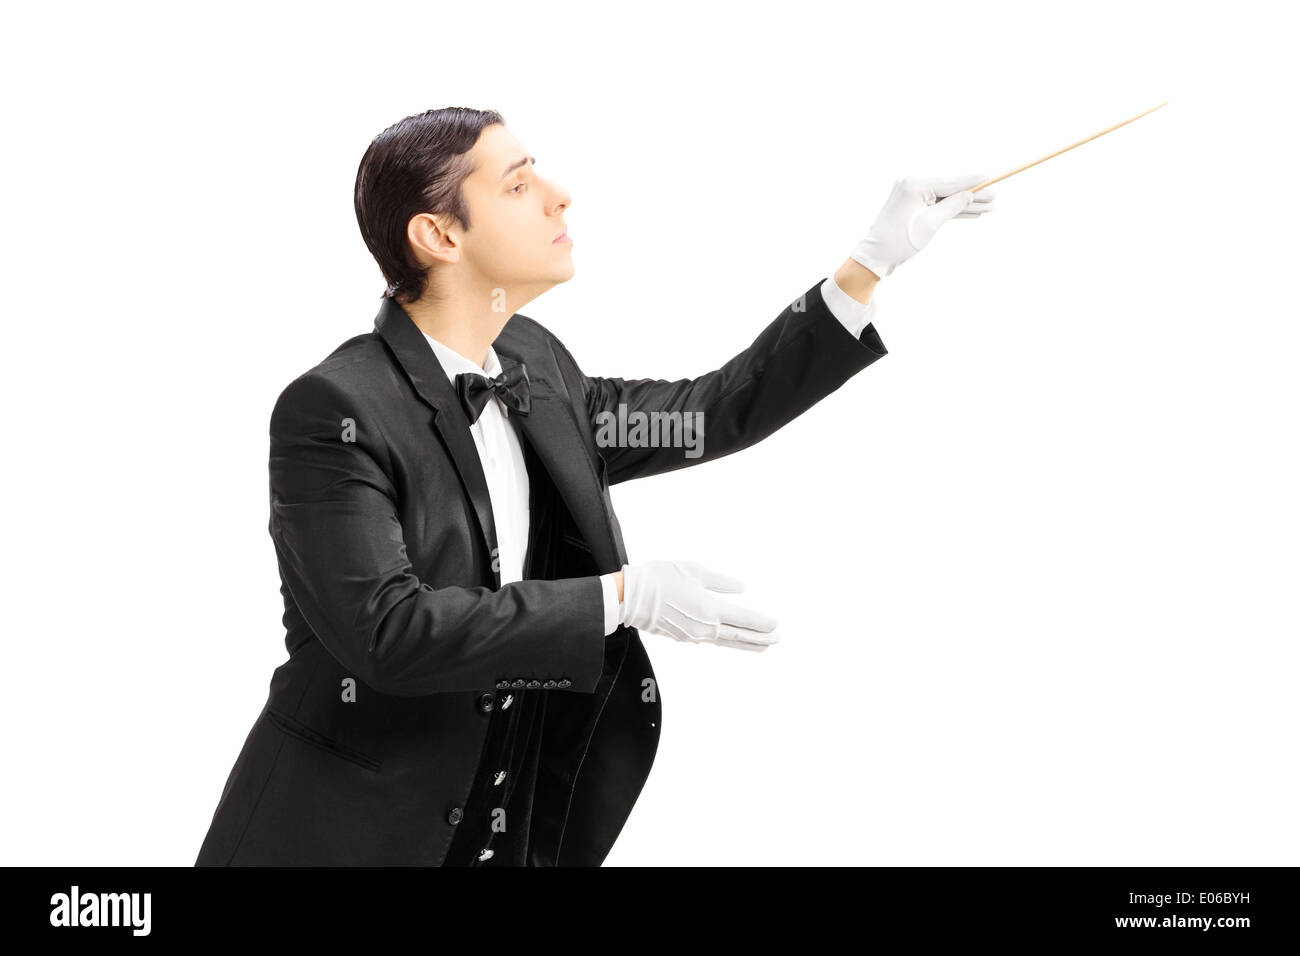 Male orchestra conductor directing with stick - Stock Image